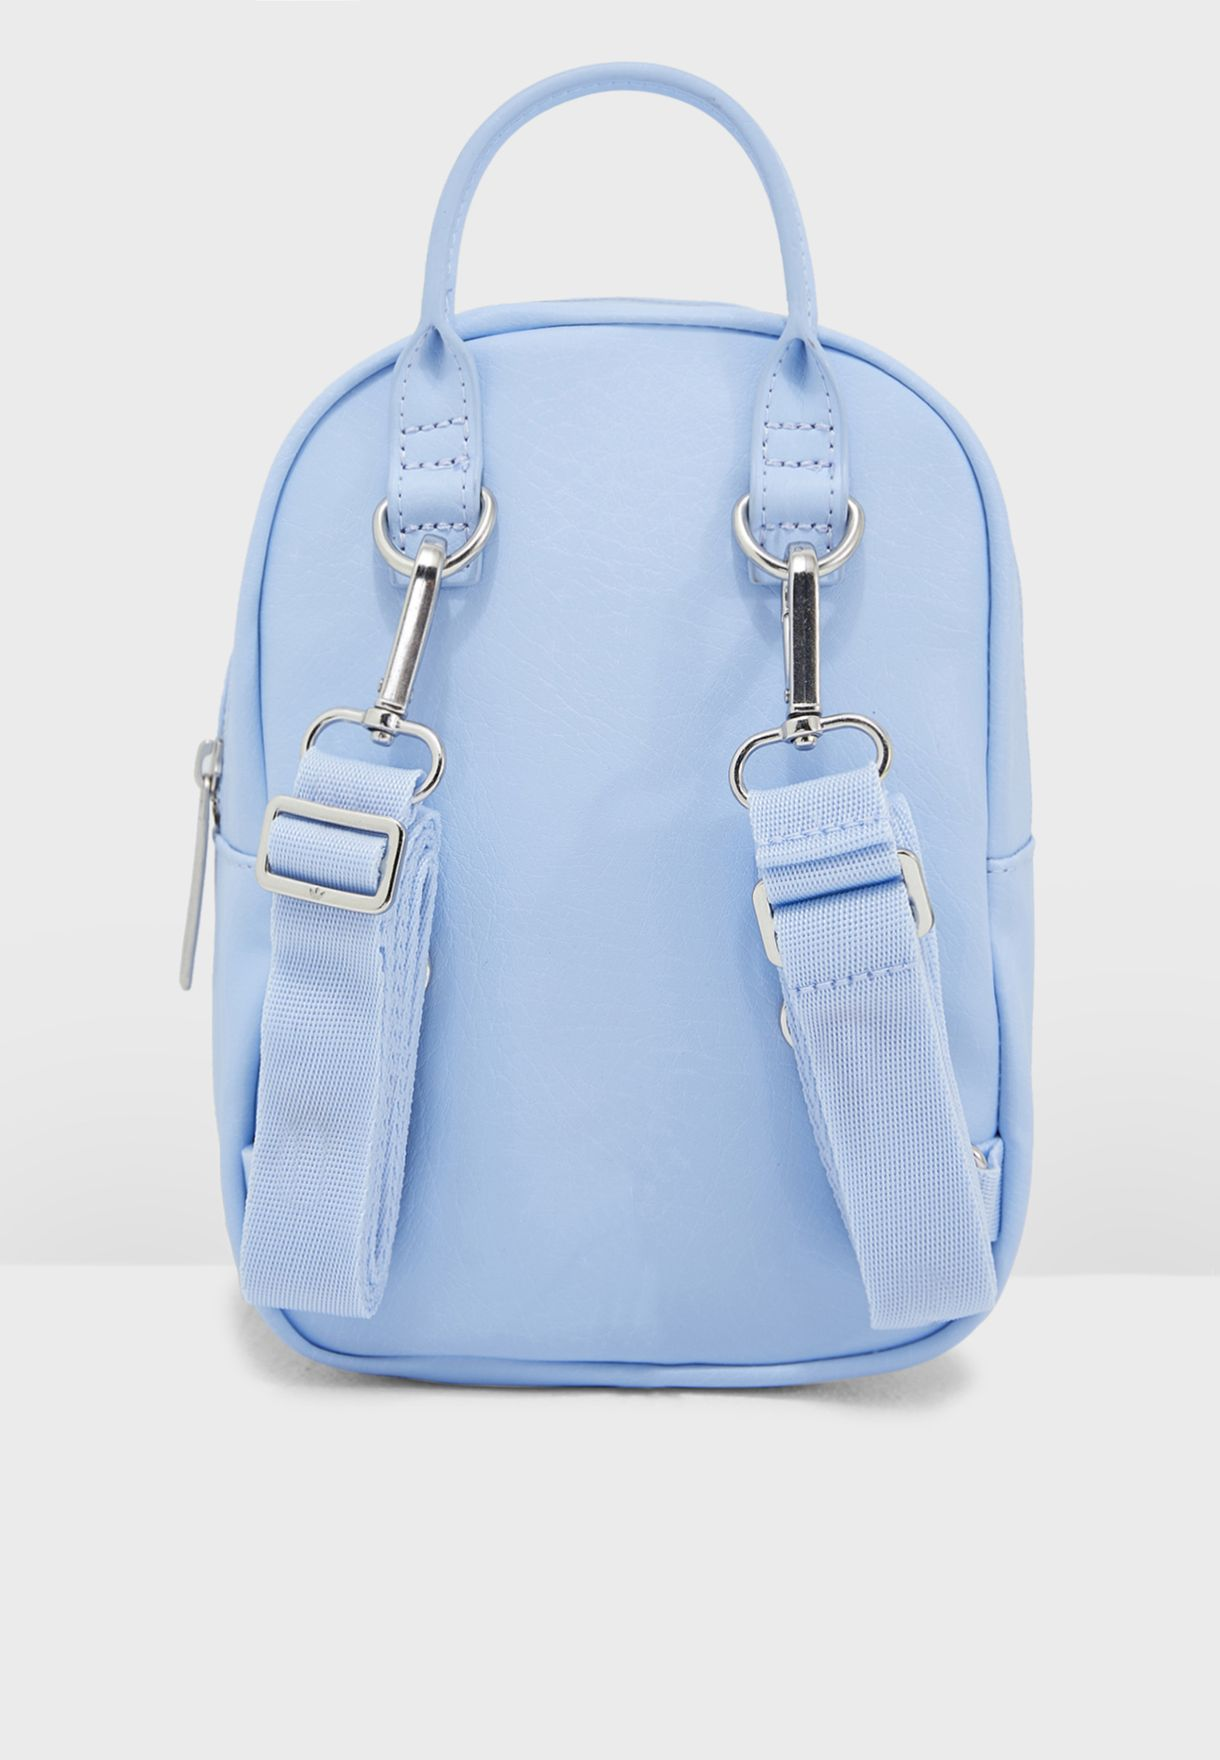 391bd73823bb Shop adidas Originals blue Extra Small Classic Backpack DU6810 for ...